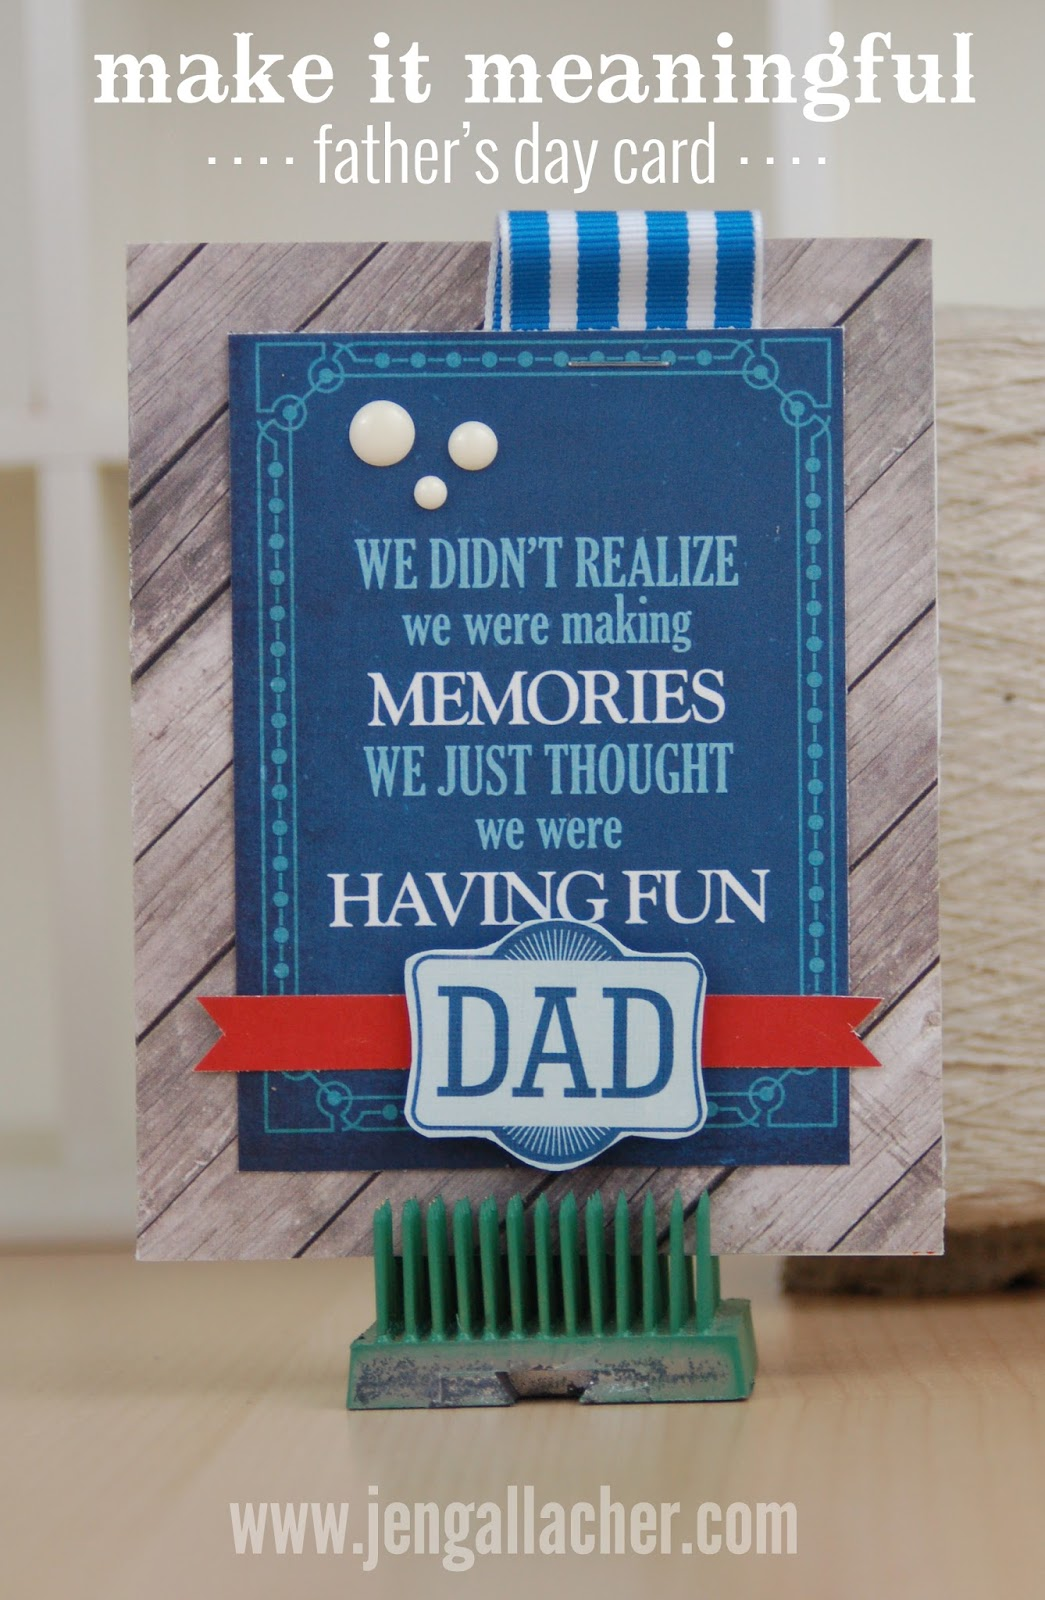 Fathers Day Card by Jen Gallacher from www.jengallacher.com